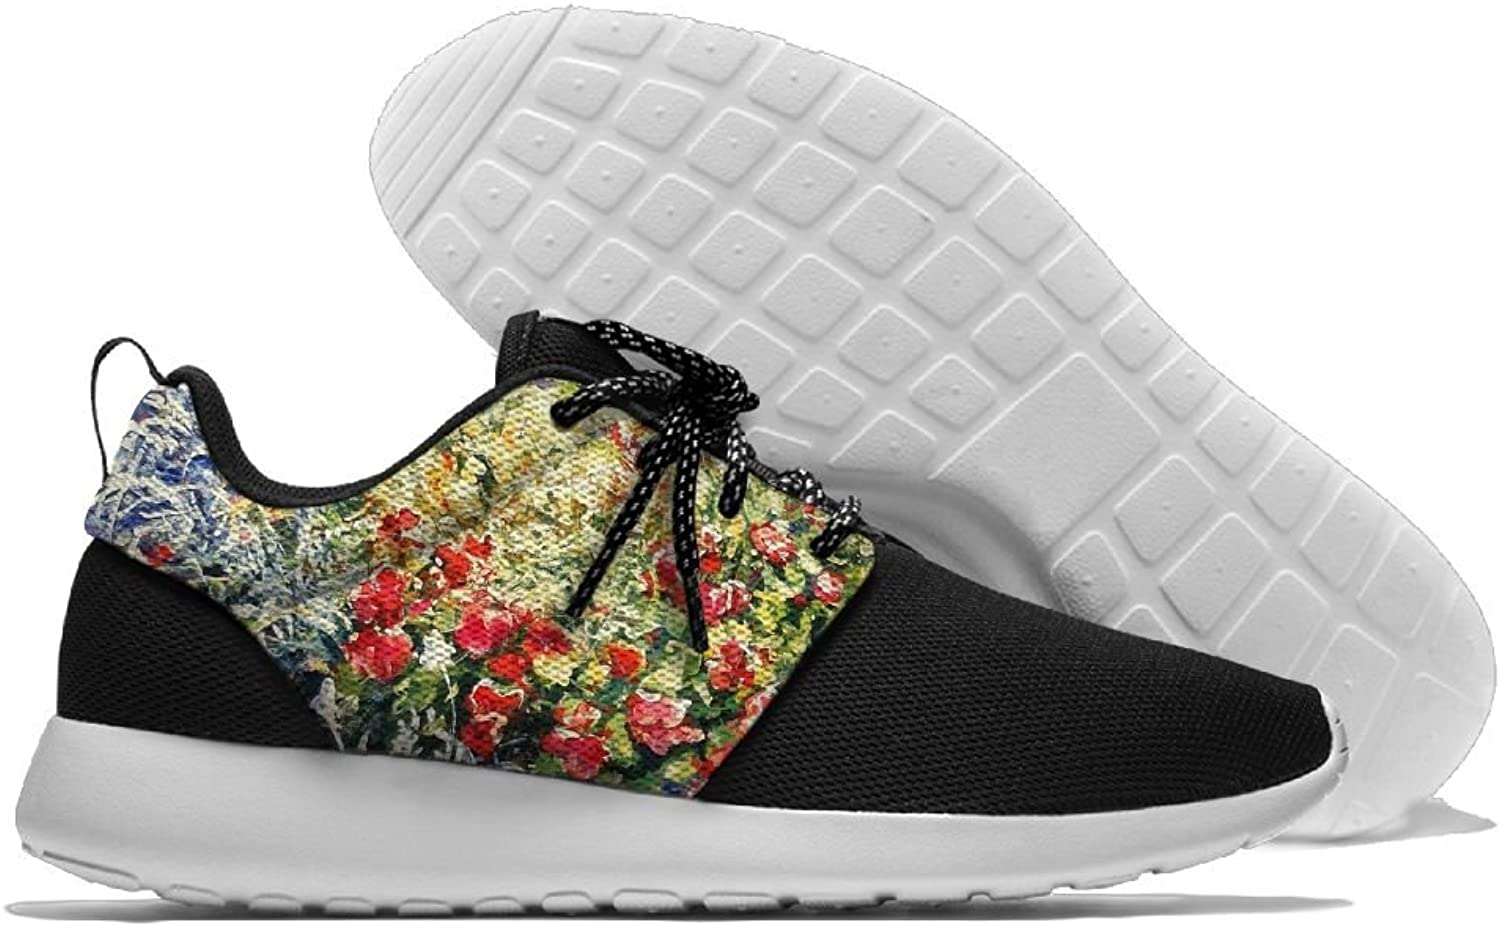 Sneakers Casual Running shoes Oil Flower Lightweight Breathable Mesh Walking Men Women shoes For Sports Athletic Gym Travel